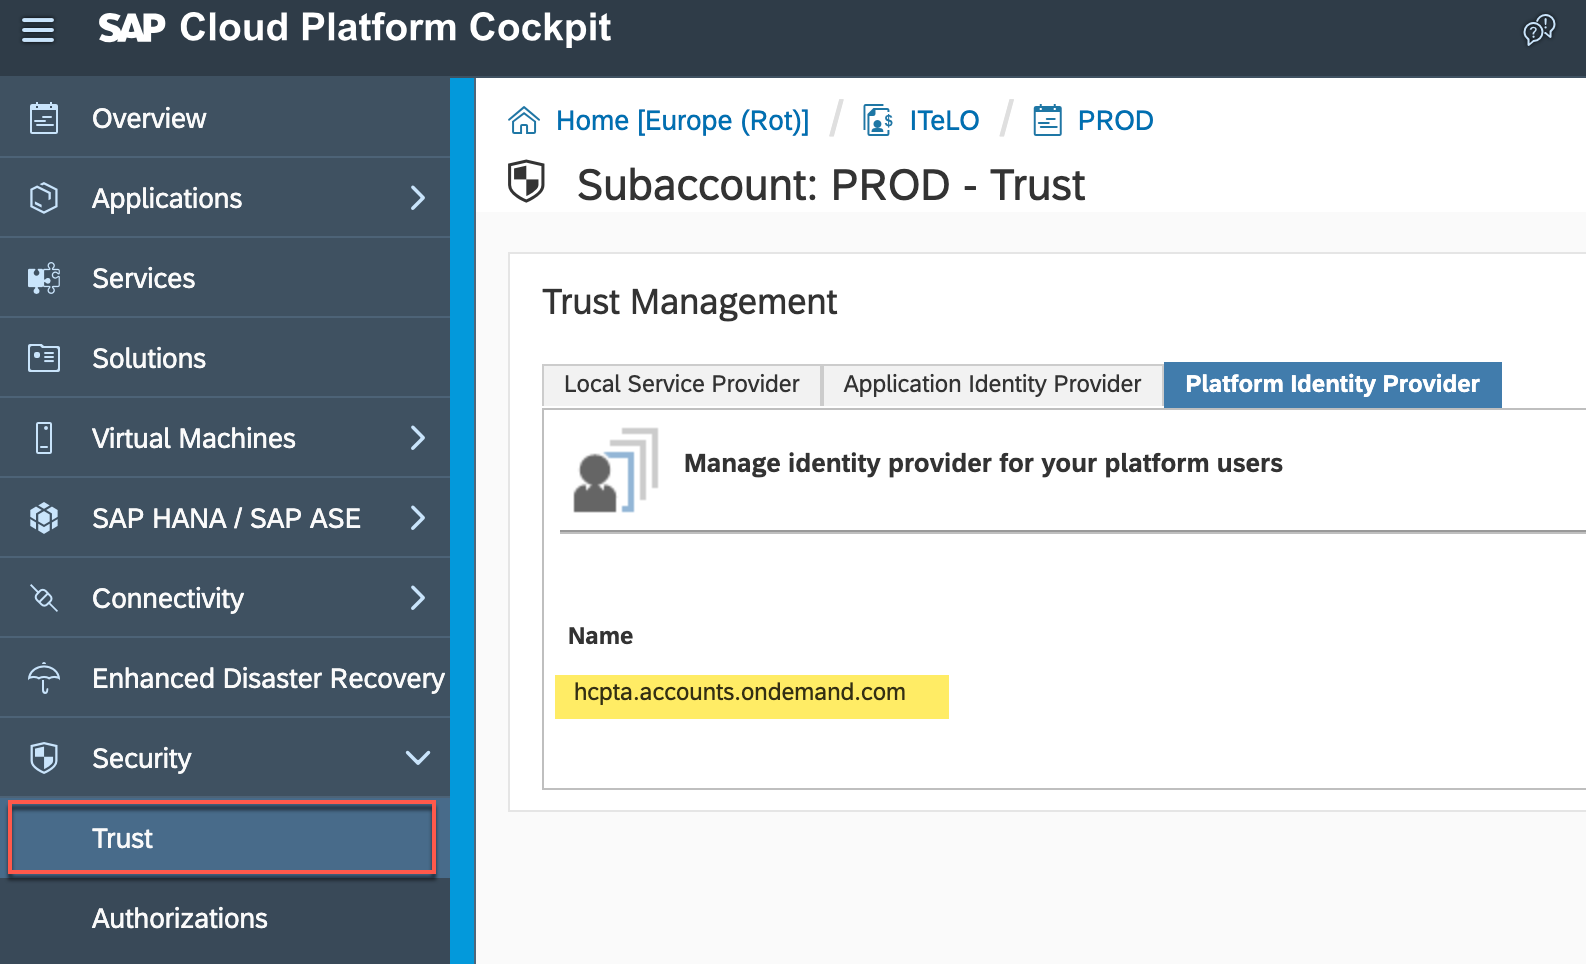 Setup a Platform Identity Provider for SAP Cloud Platform | SAP Blogs